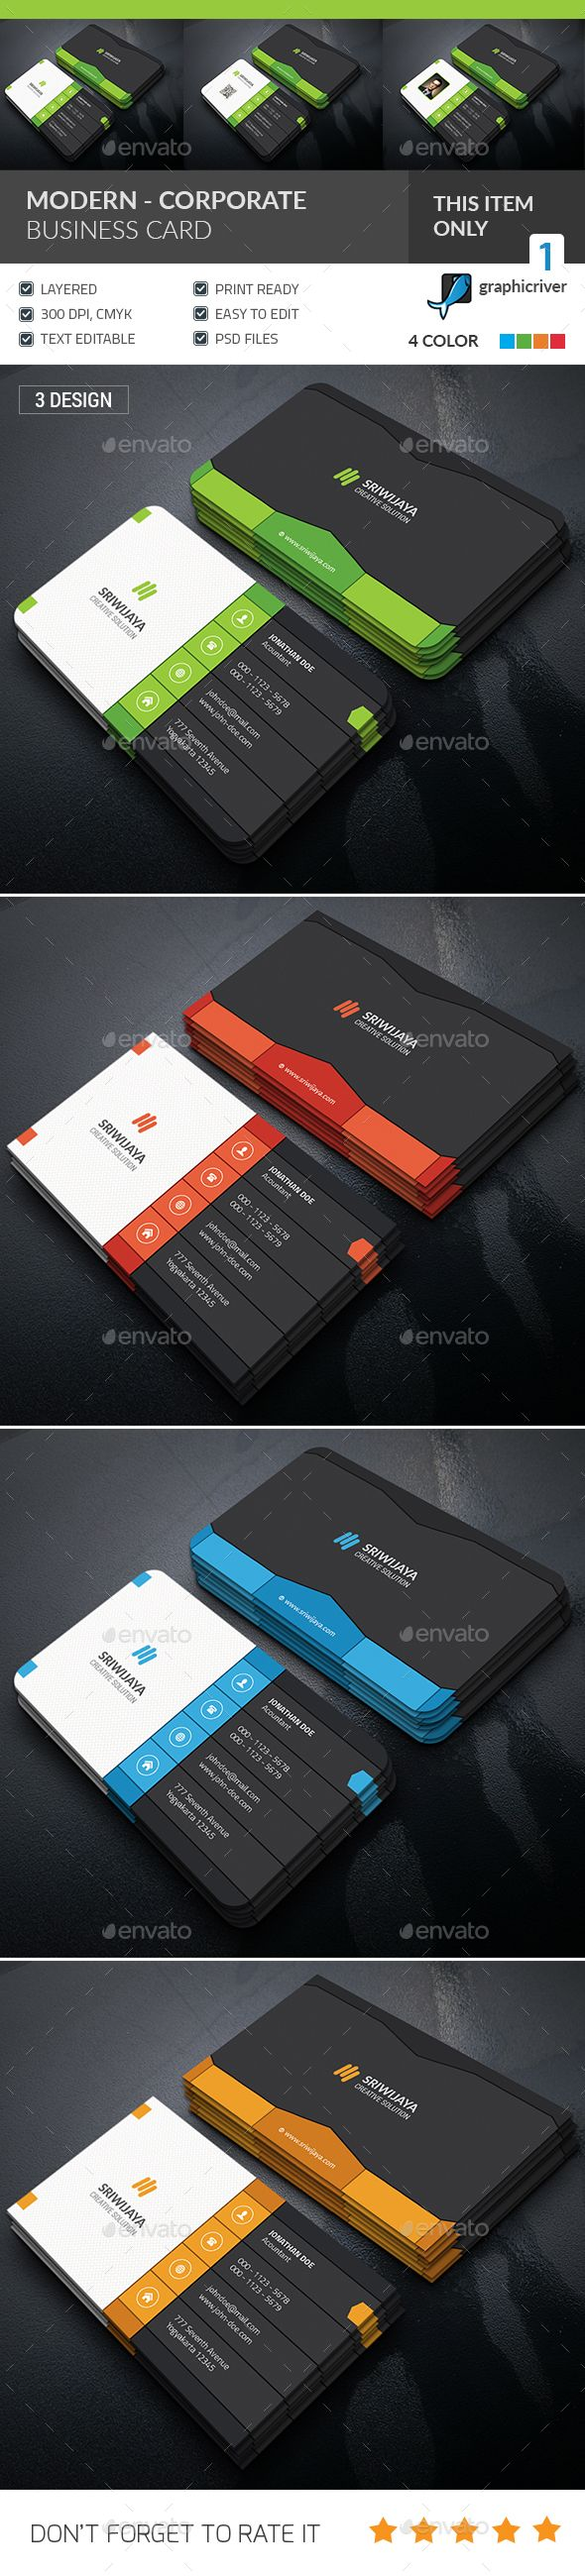 Modern Corporate Business Card Template PSD. Download here: http://graphicriver.net/item/modern-corporate-business-card-/15987101?ref=ksioks